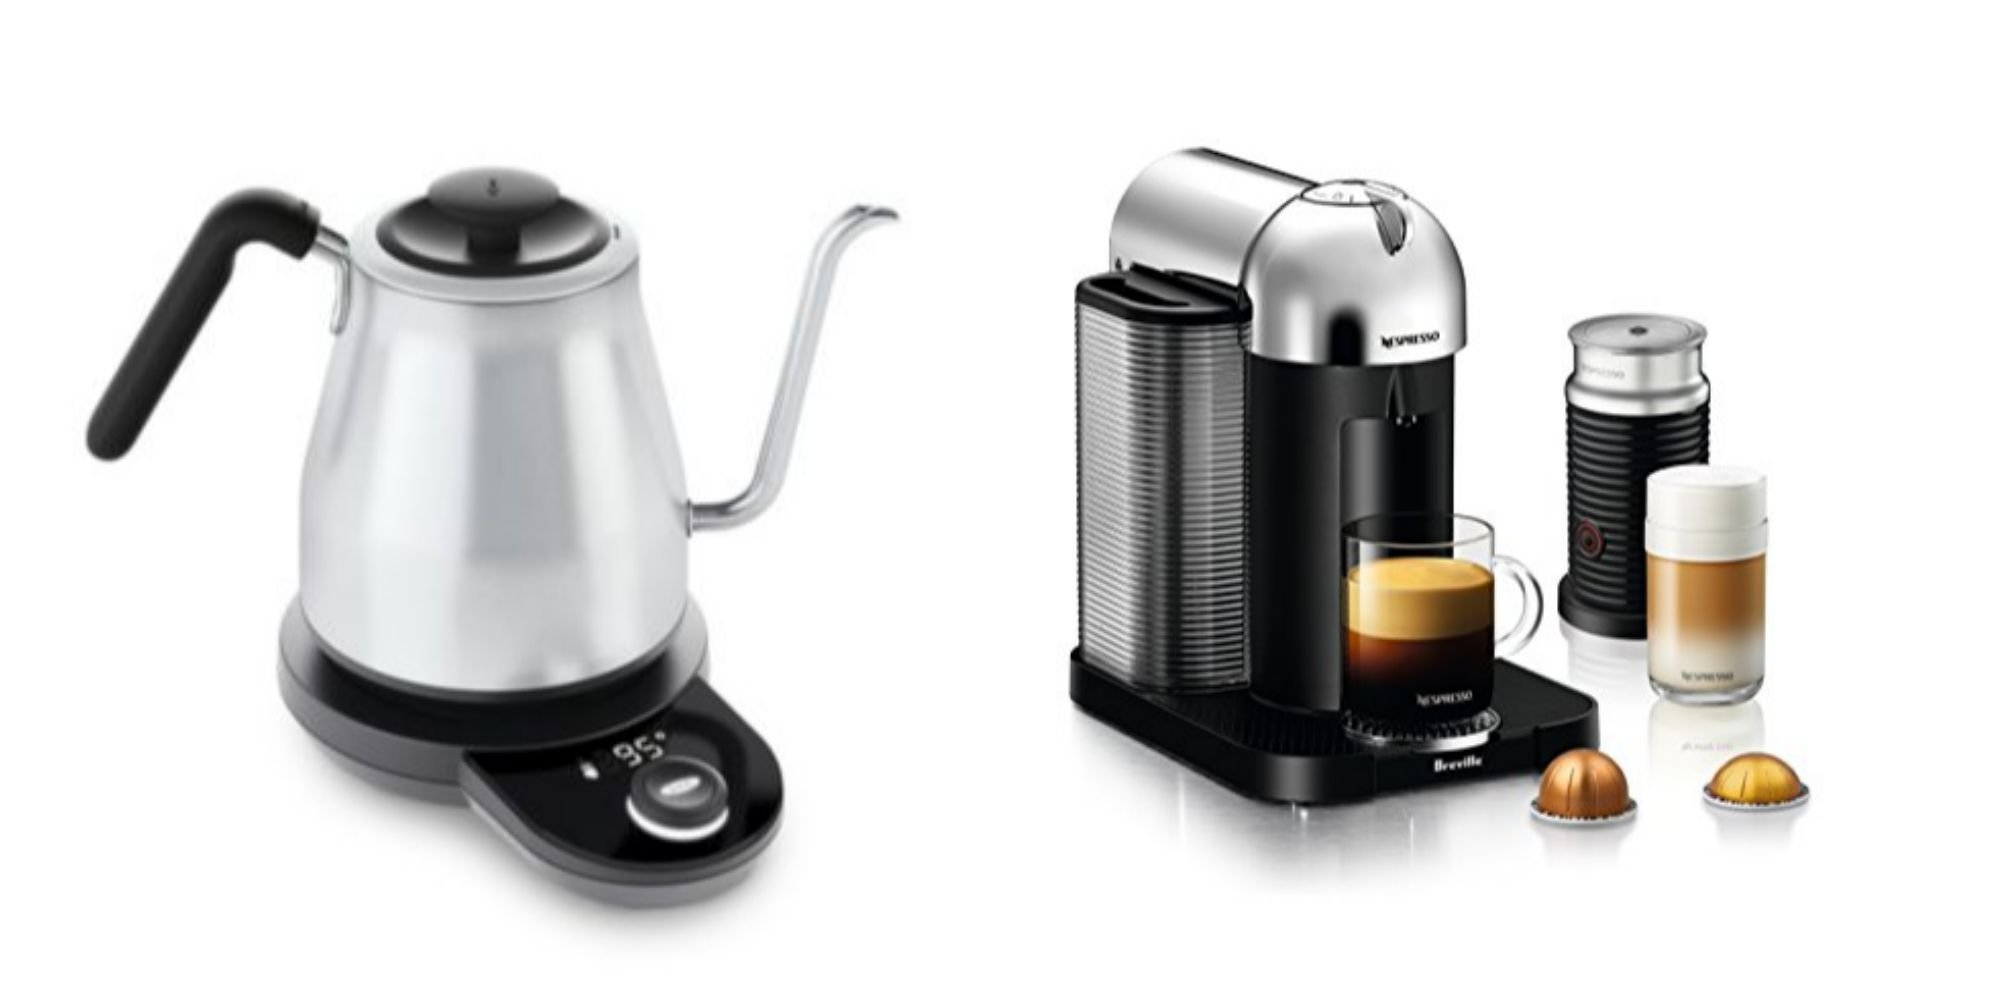 The 10 Best Gift Ideas for Coffee Lovers - Big World News